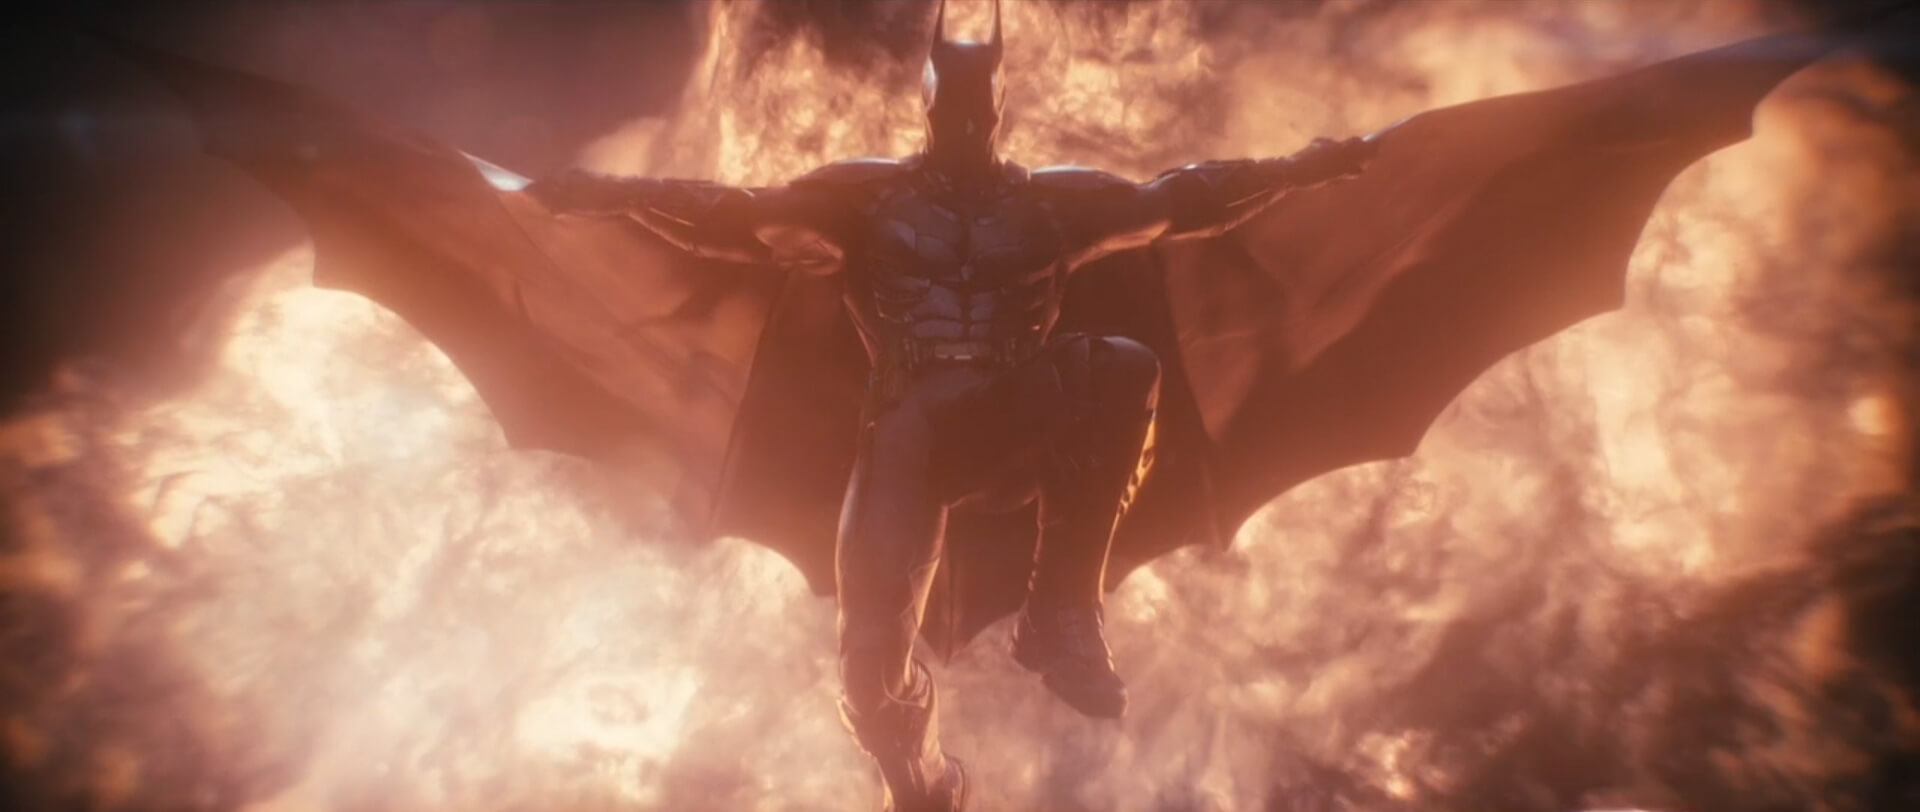 batman-arkham-knight-batmobile-trailer-laser-time